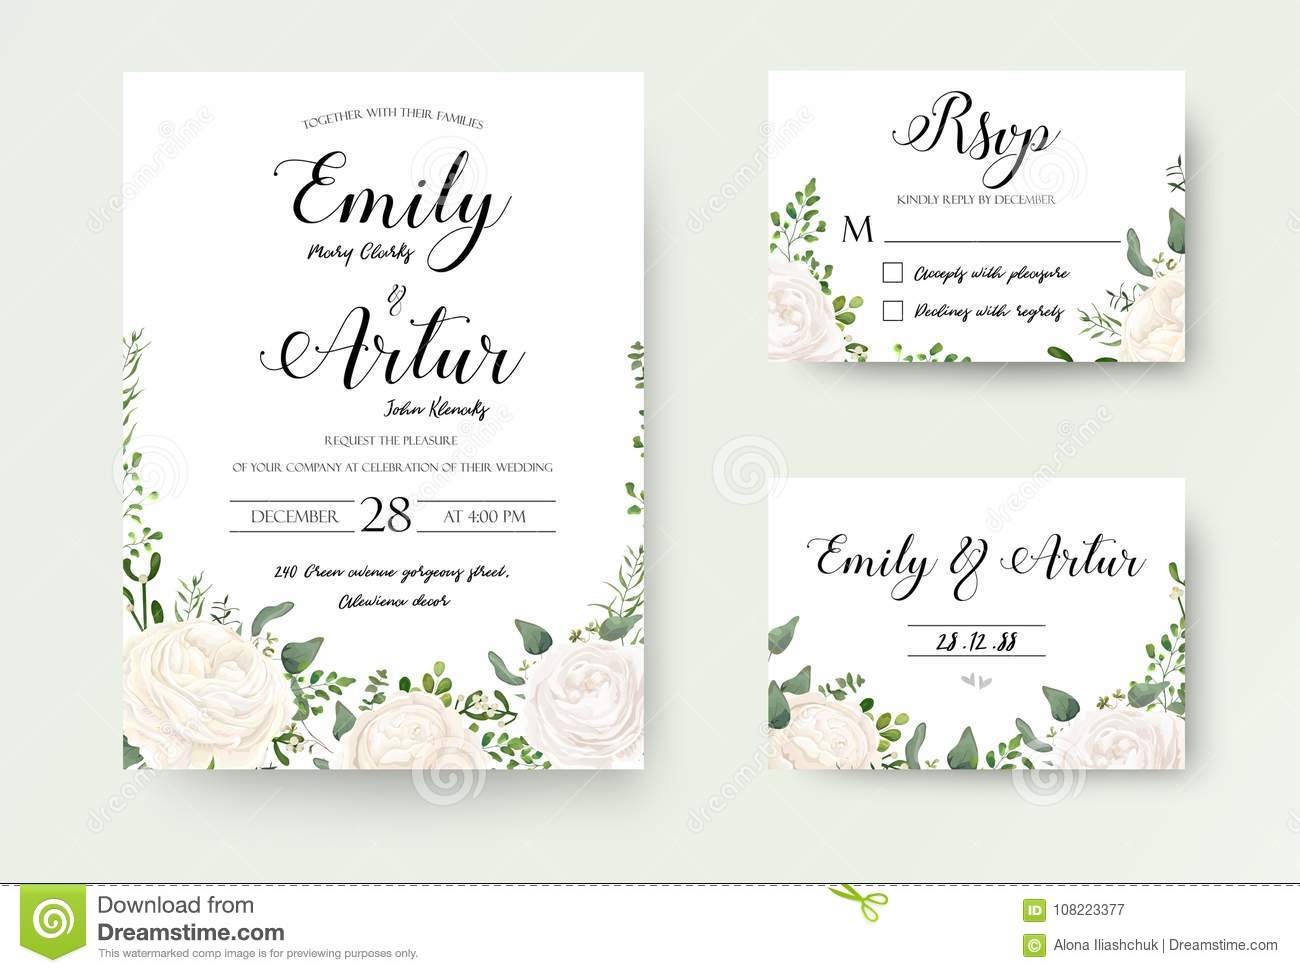 Wedding Invitation floral invite Rsvp cute card vector Designs s